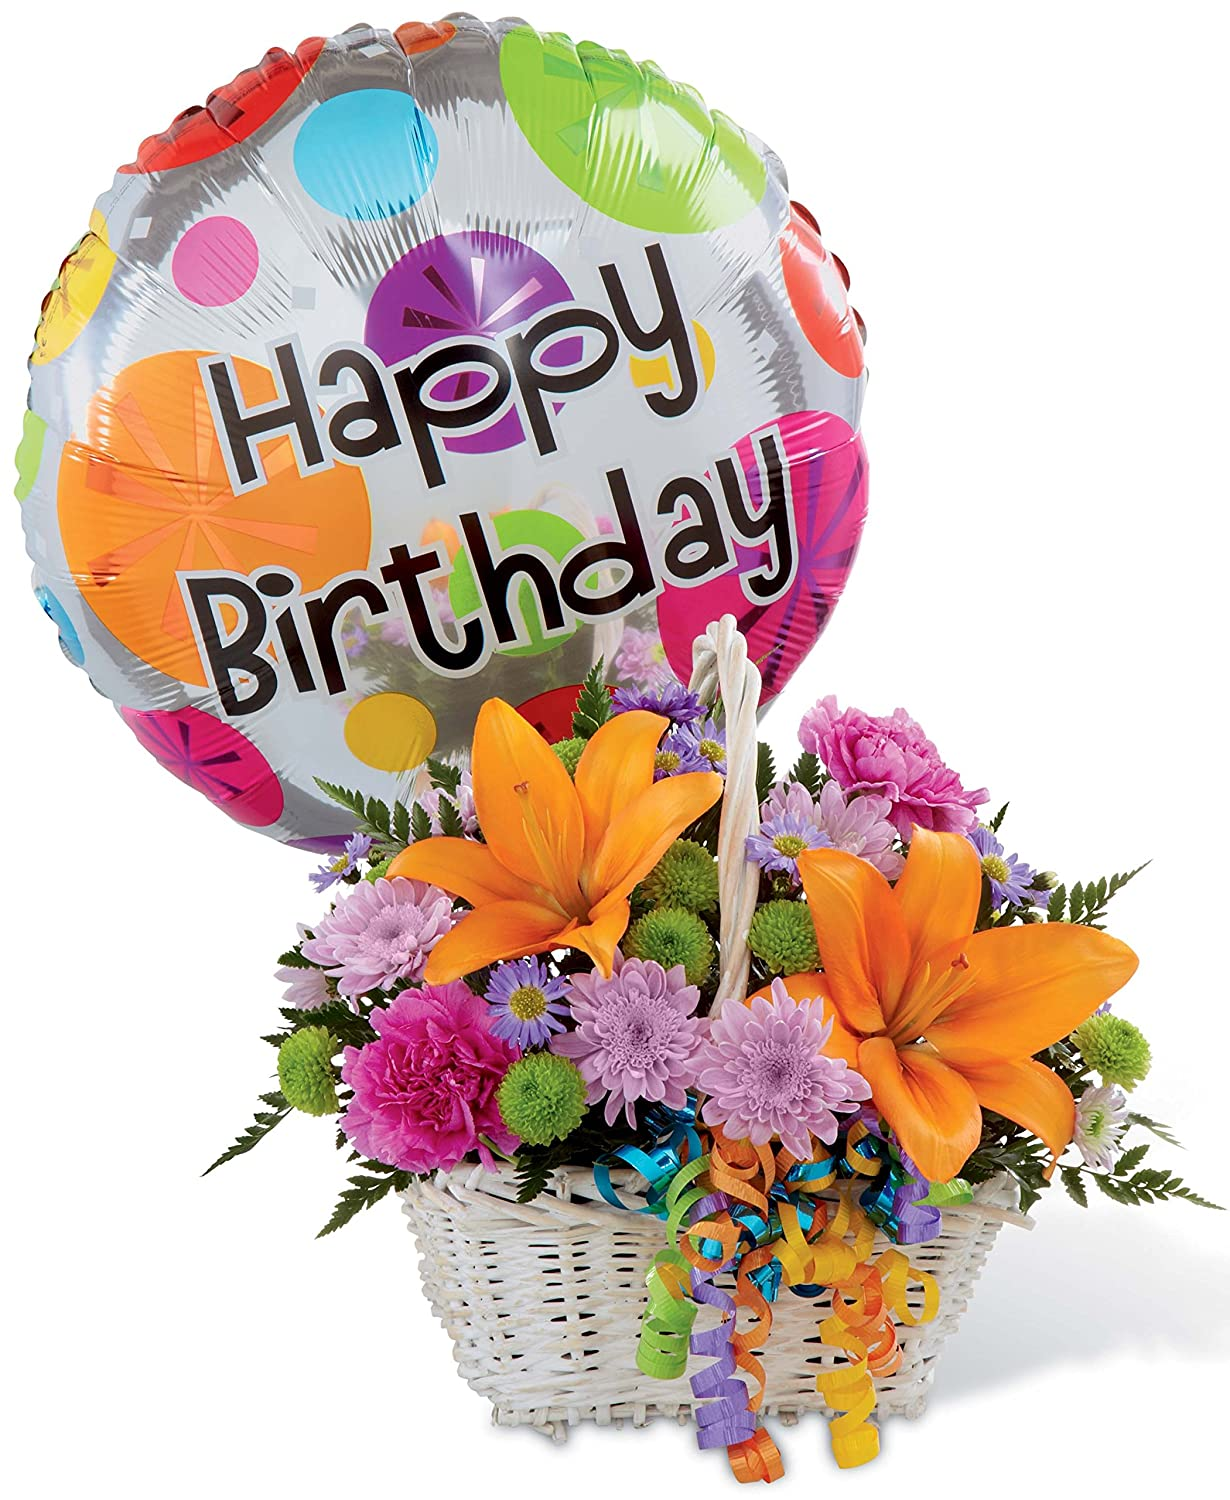 The Birthday Blooms Basket Grower Direct